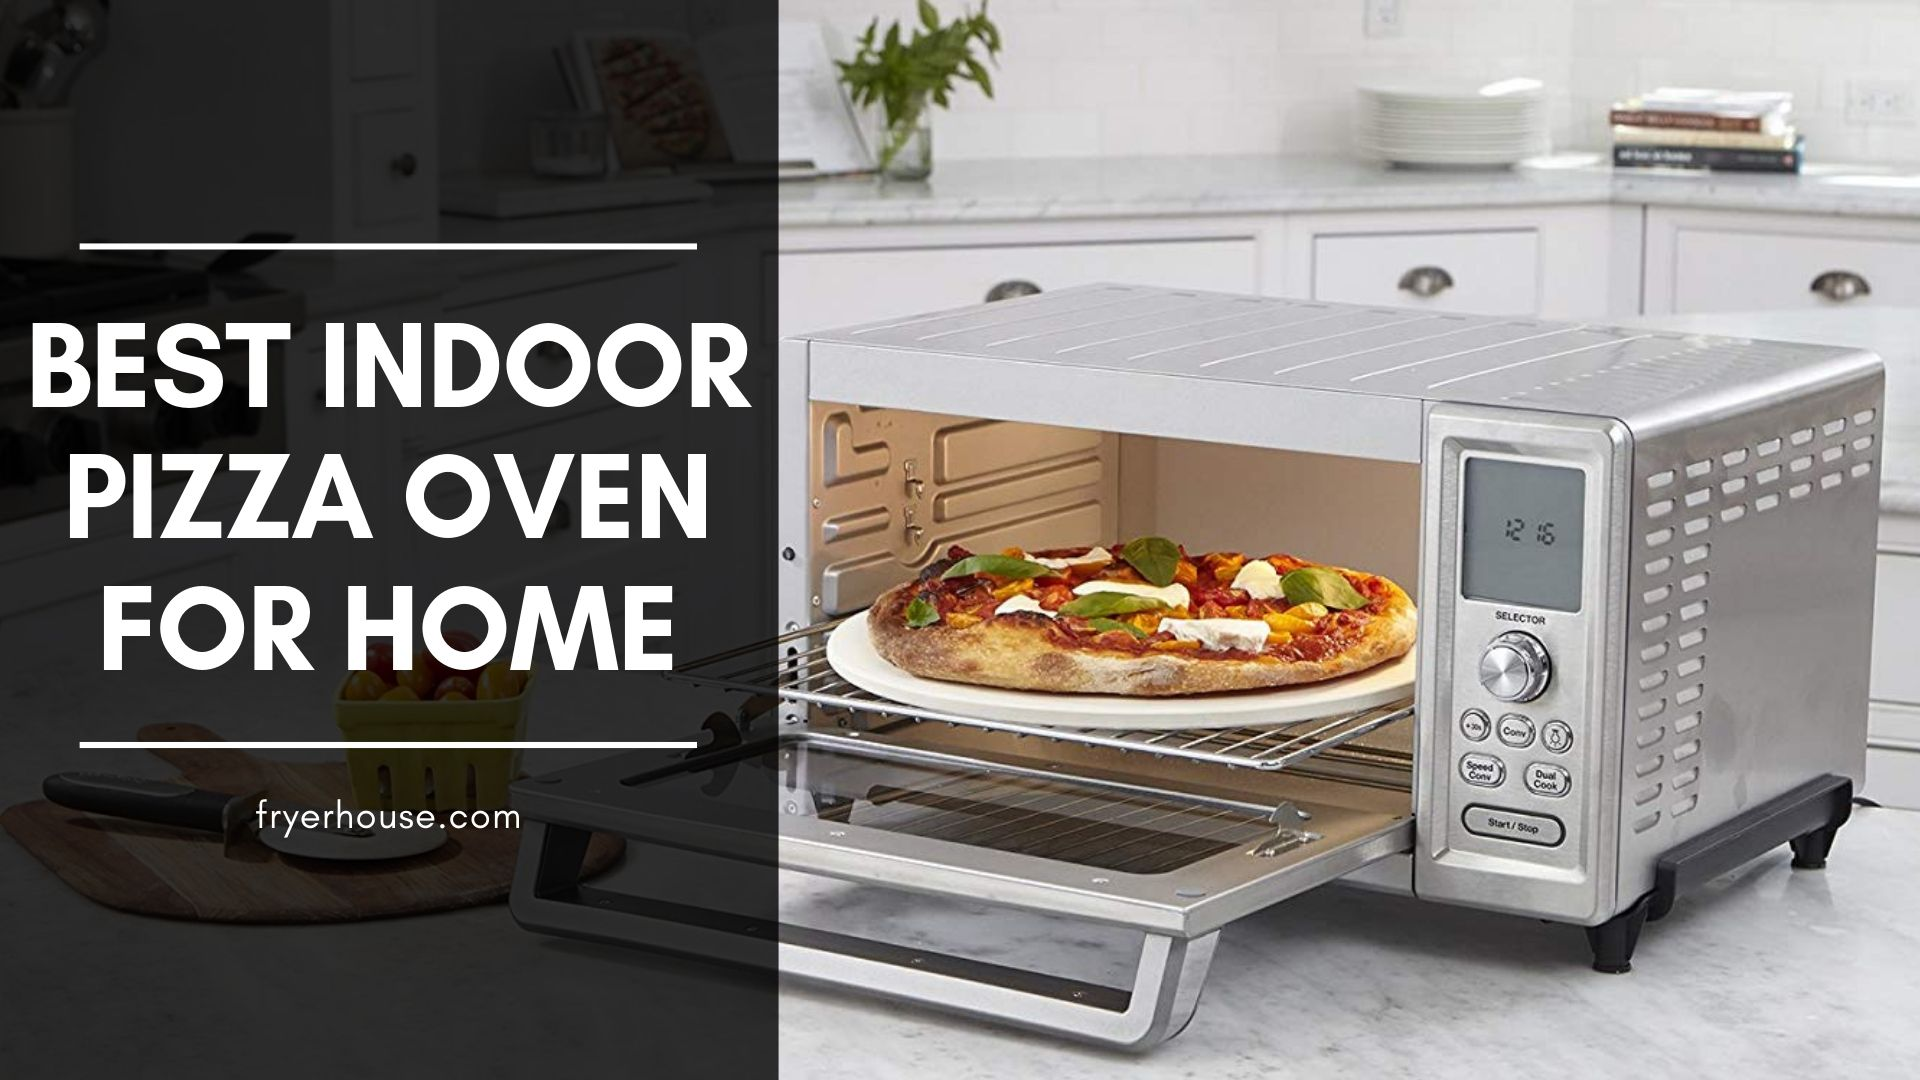 Best Indoor Pizza Oven For Home